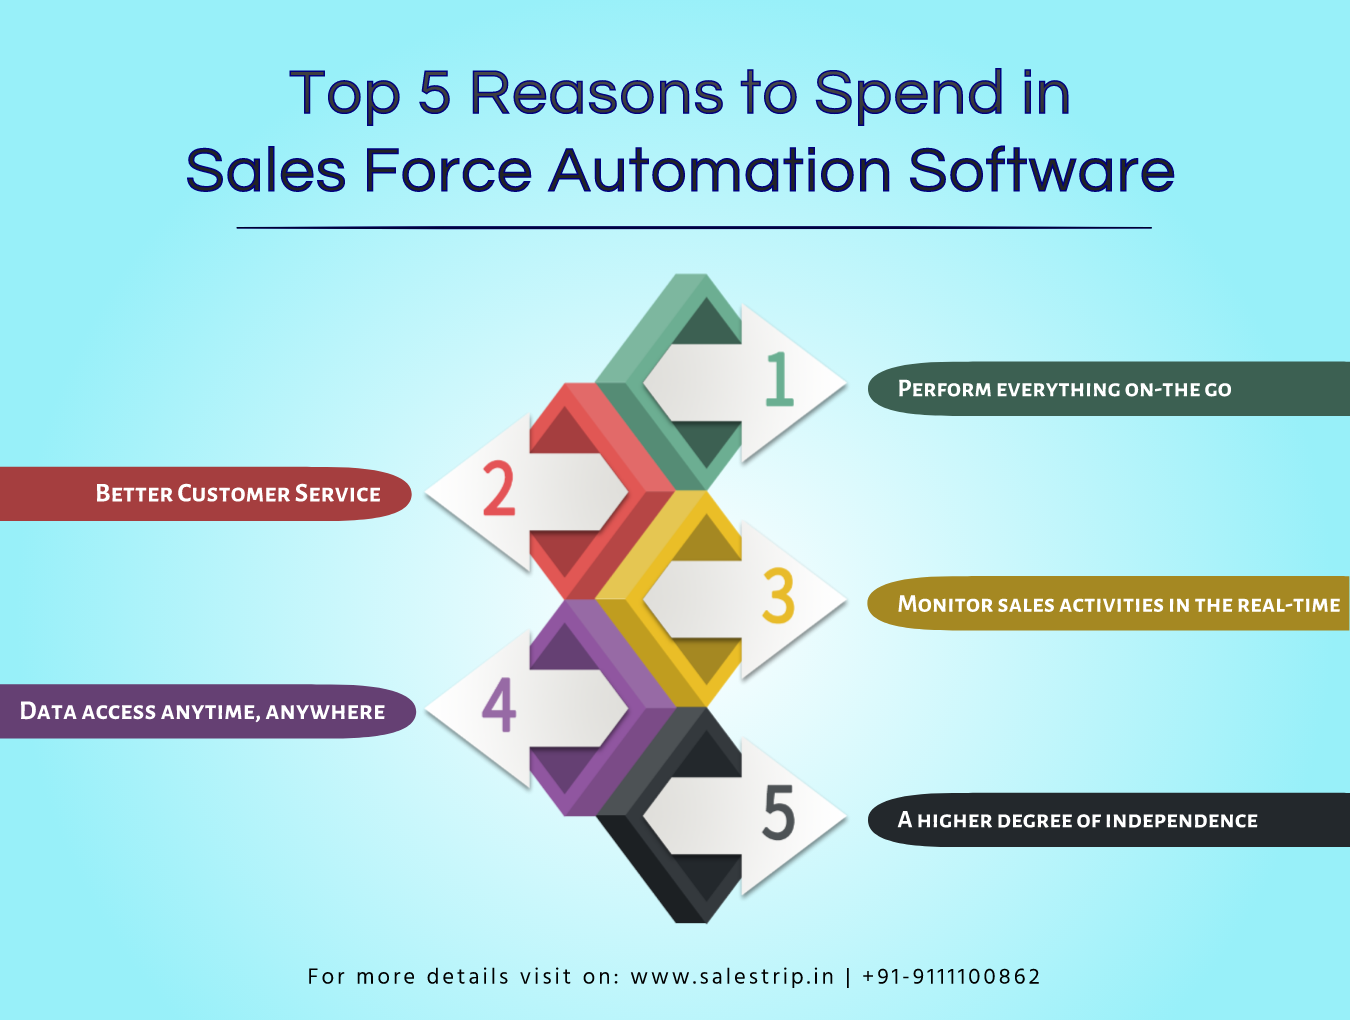 sales force automation software, Salestrip Sales Force Automation, Pharma SFA, MR Reporting Software